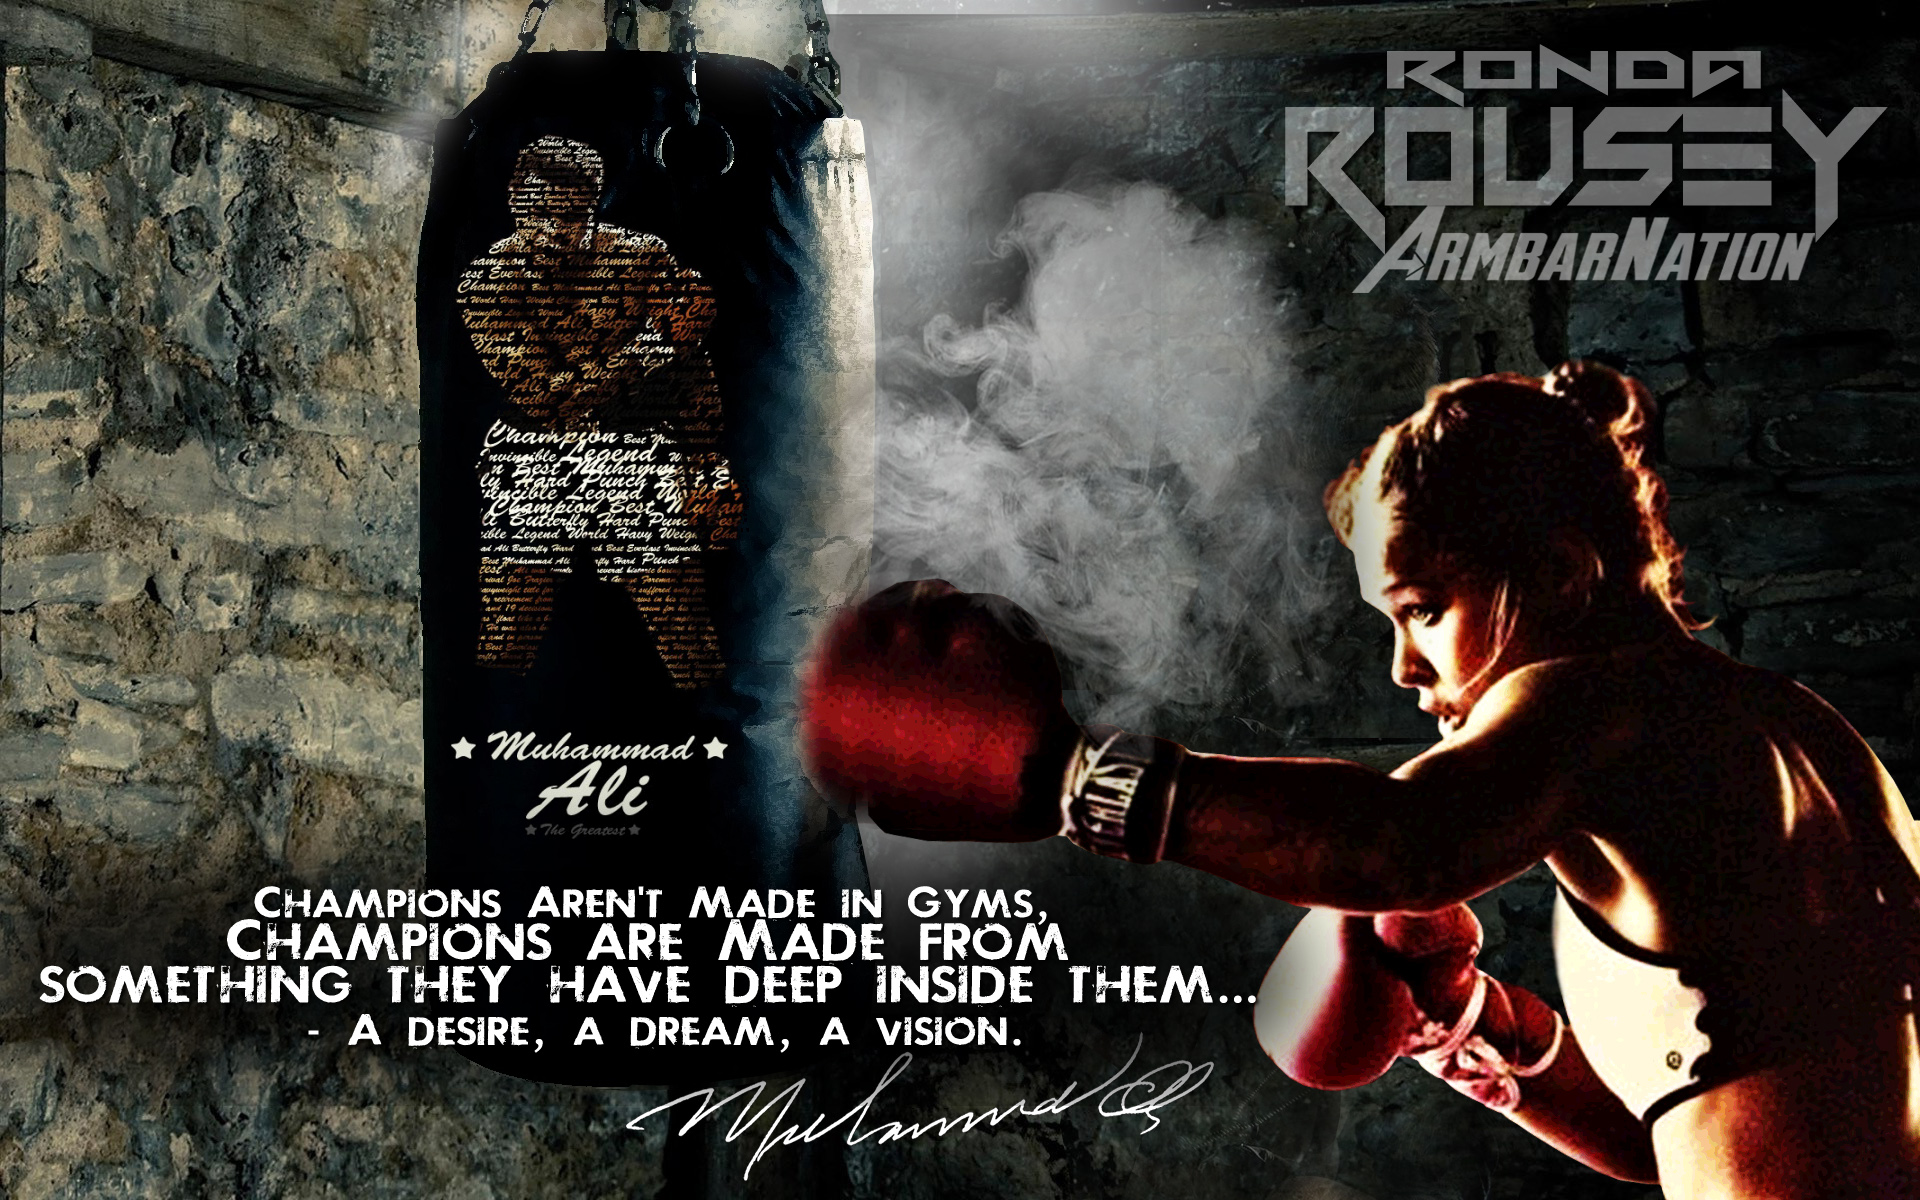 Armbar Nations Ronda Rousey Wallpapers Armbar Nation 1920x1200